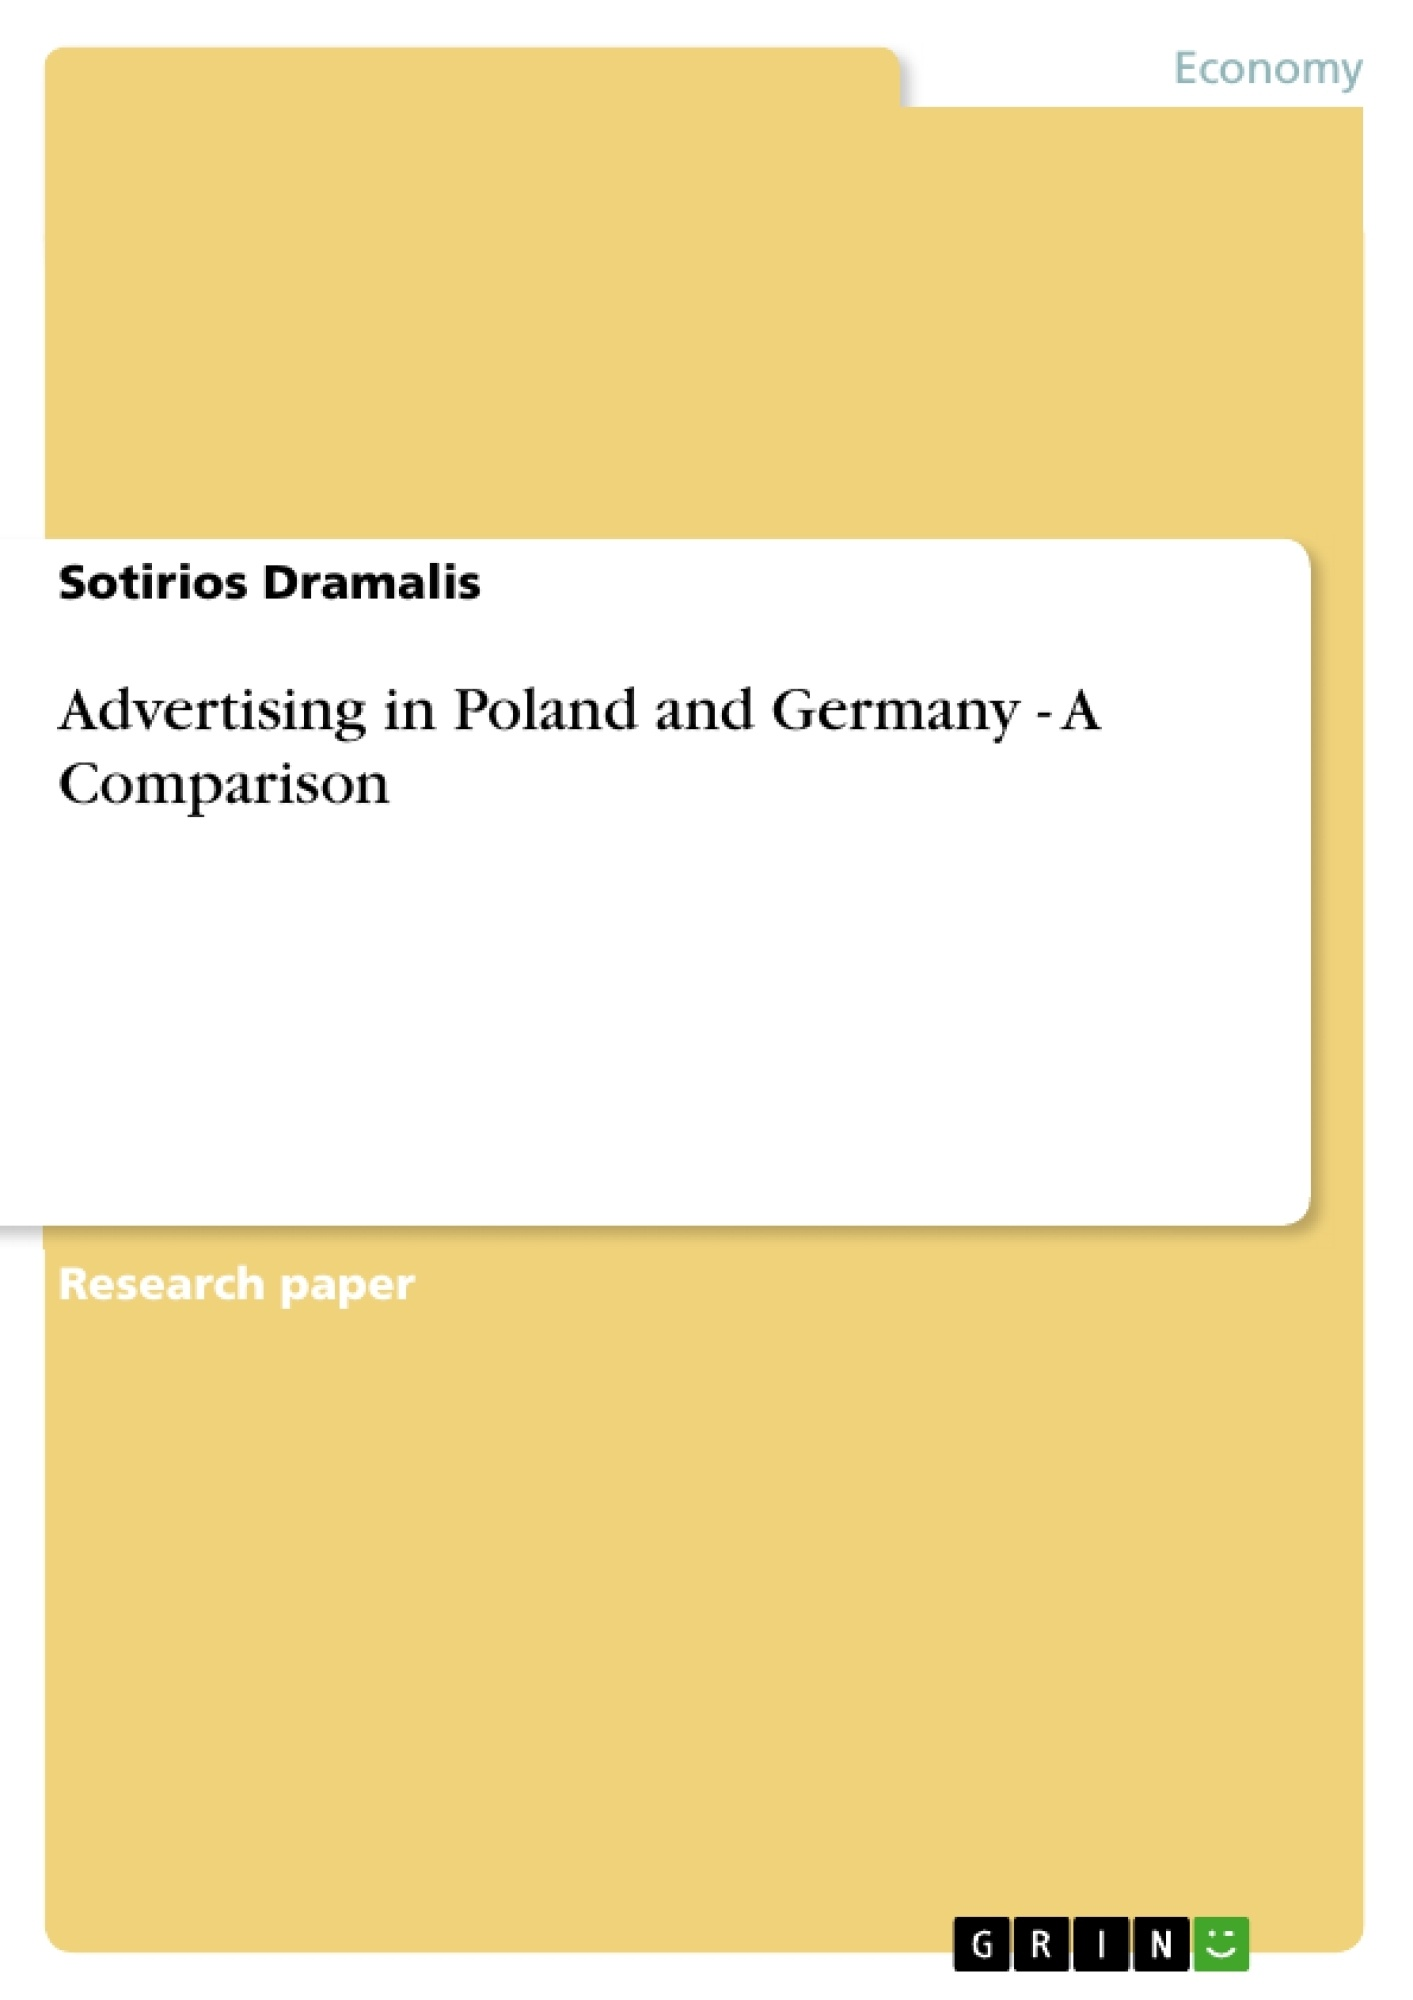 Title: Advertising in Poland and Germany - A Comparison